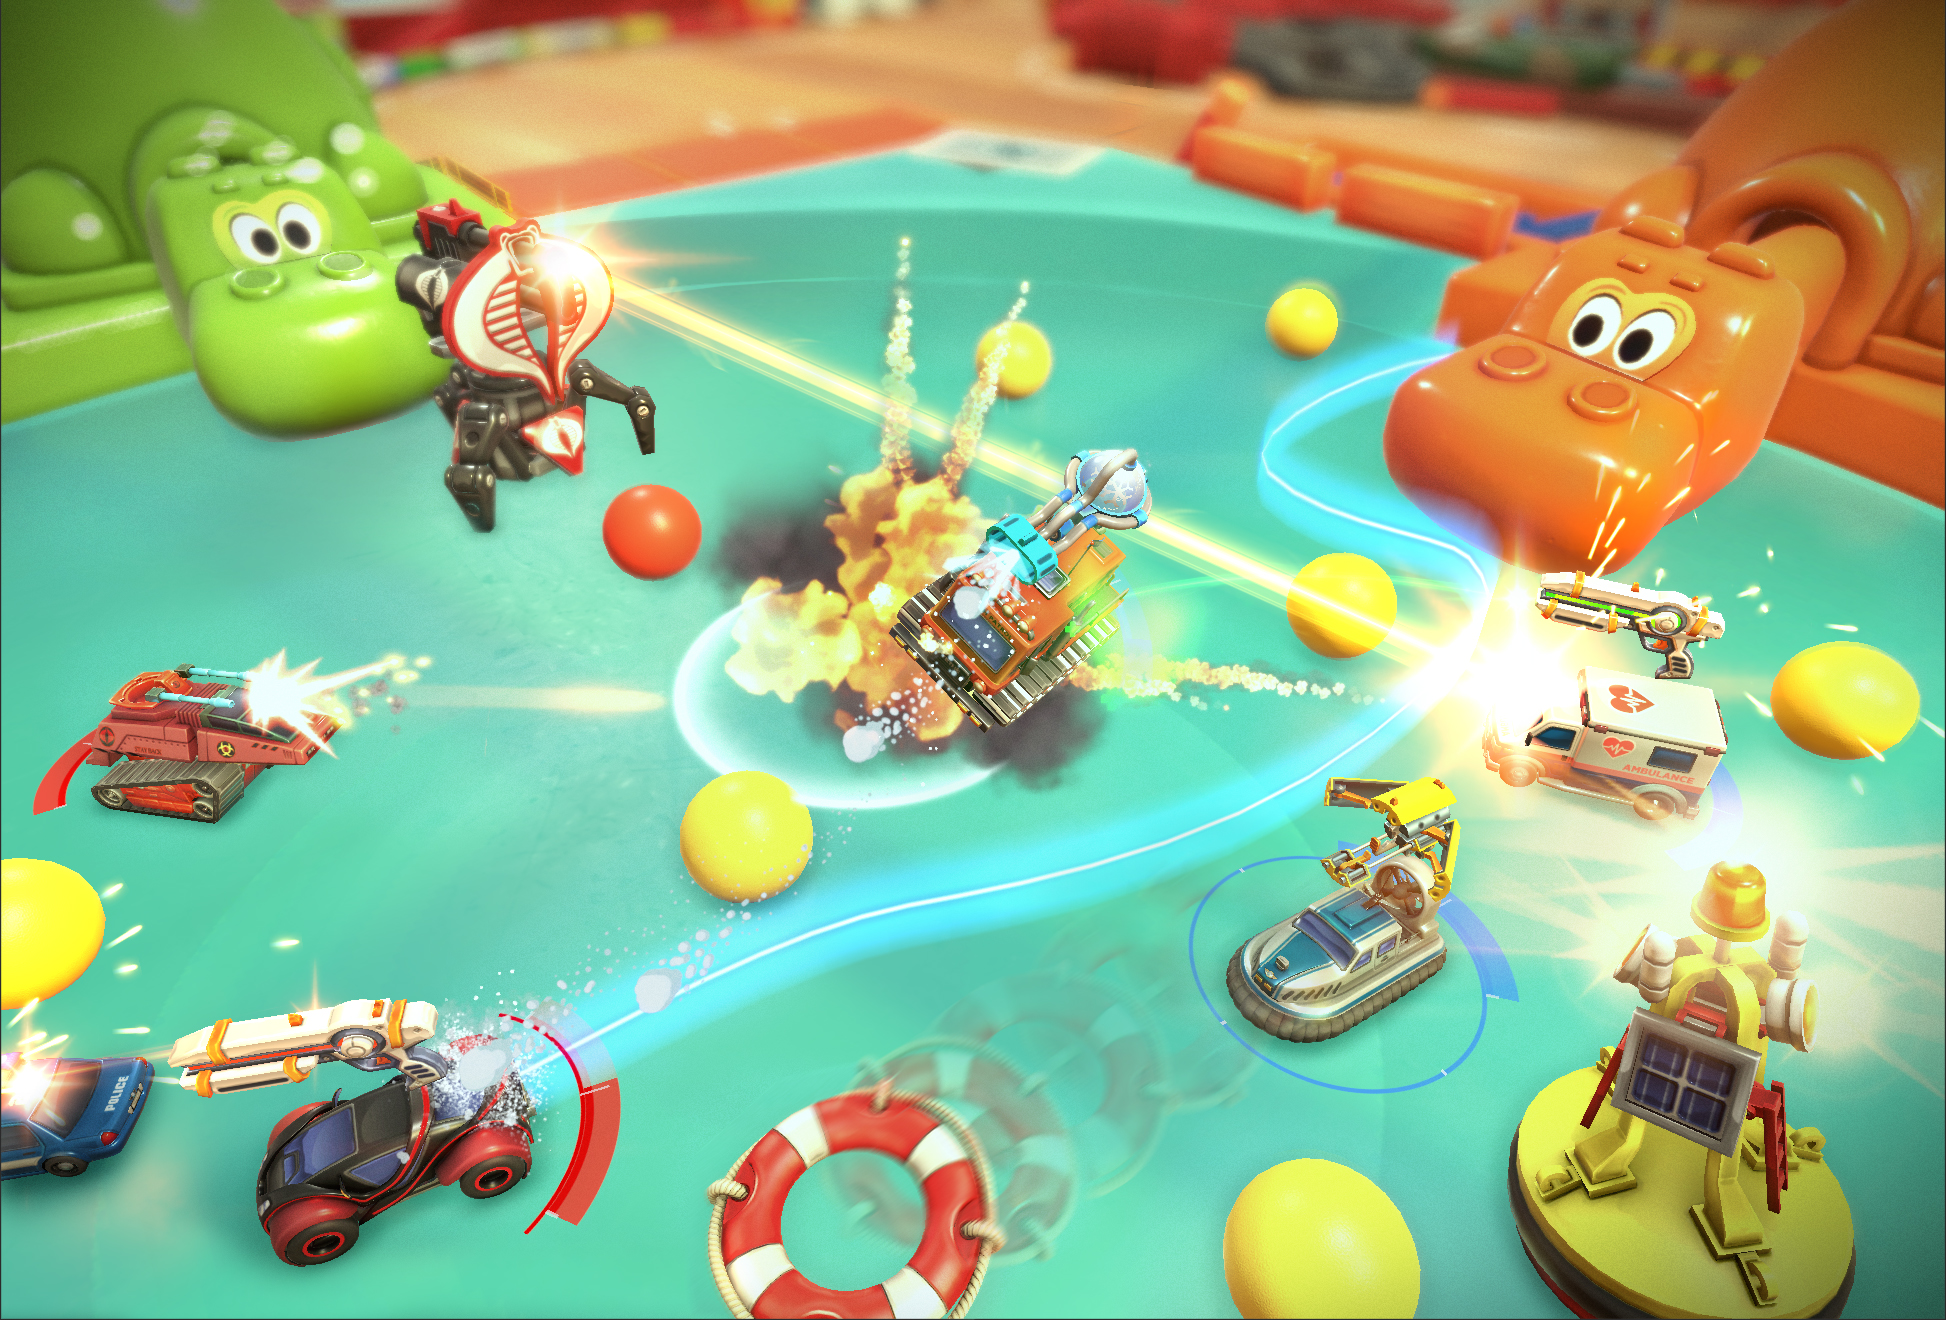 Micro Machines: World Series Hands-On Preview - How Has This Classic ...